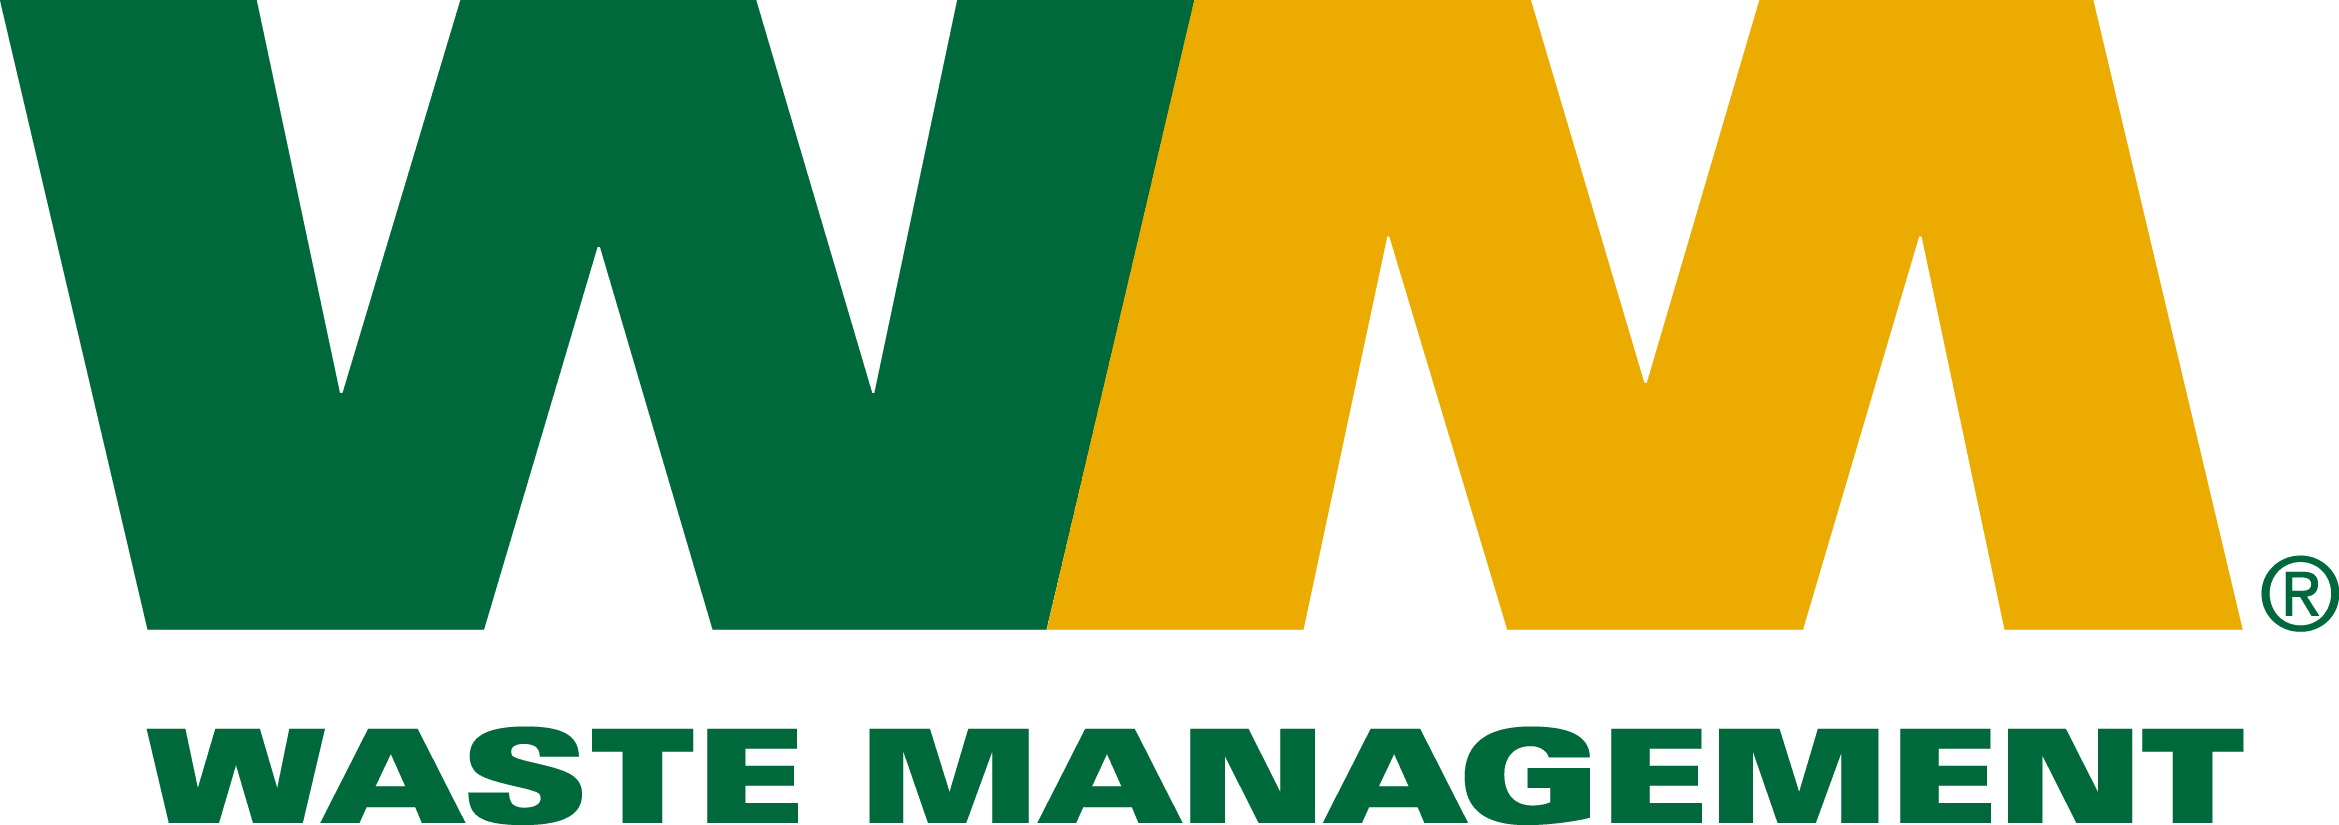 Waste Management Services During Hurricane Sally